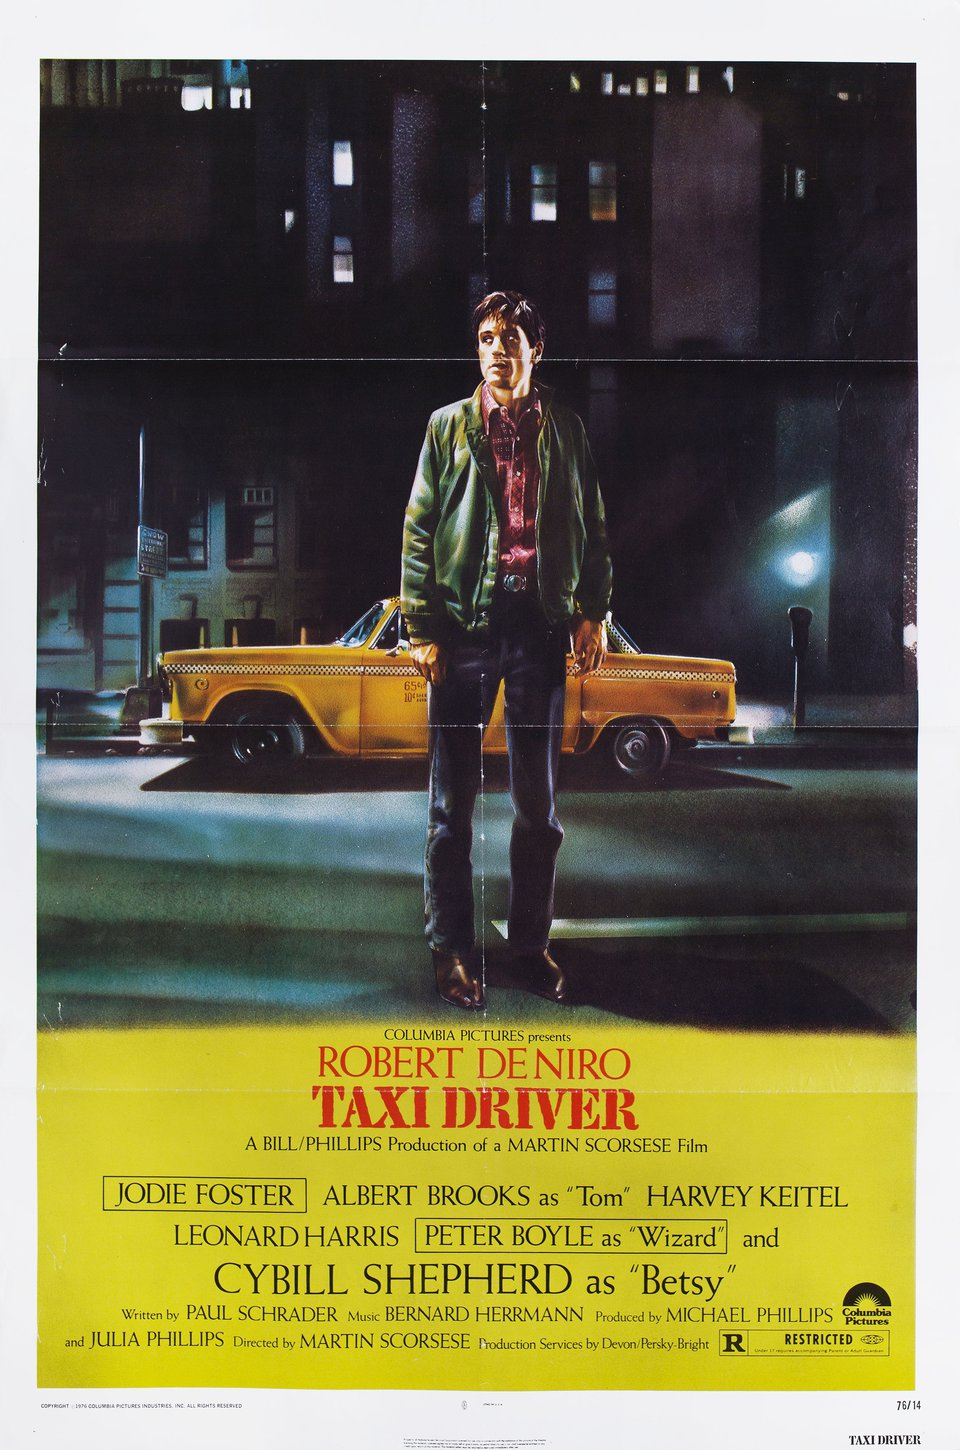 Taxi Driver 1976 U S One Sheet Poster Posteritati Movie Poster Gallery New York Big Yellow Taxi Taxi Driver Martin Scorsese